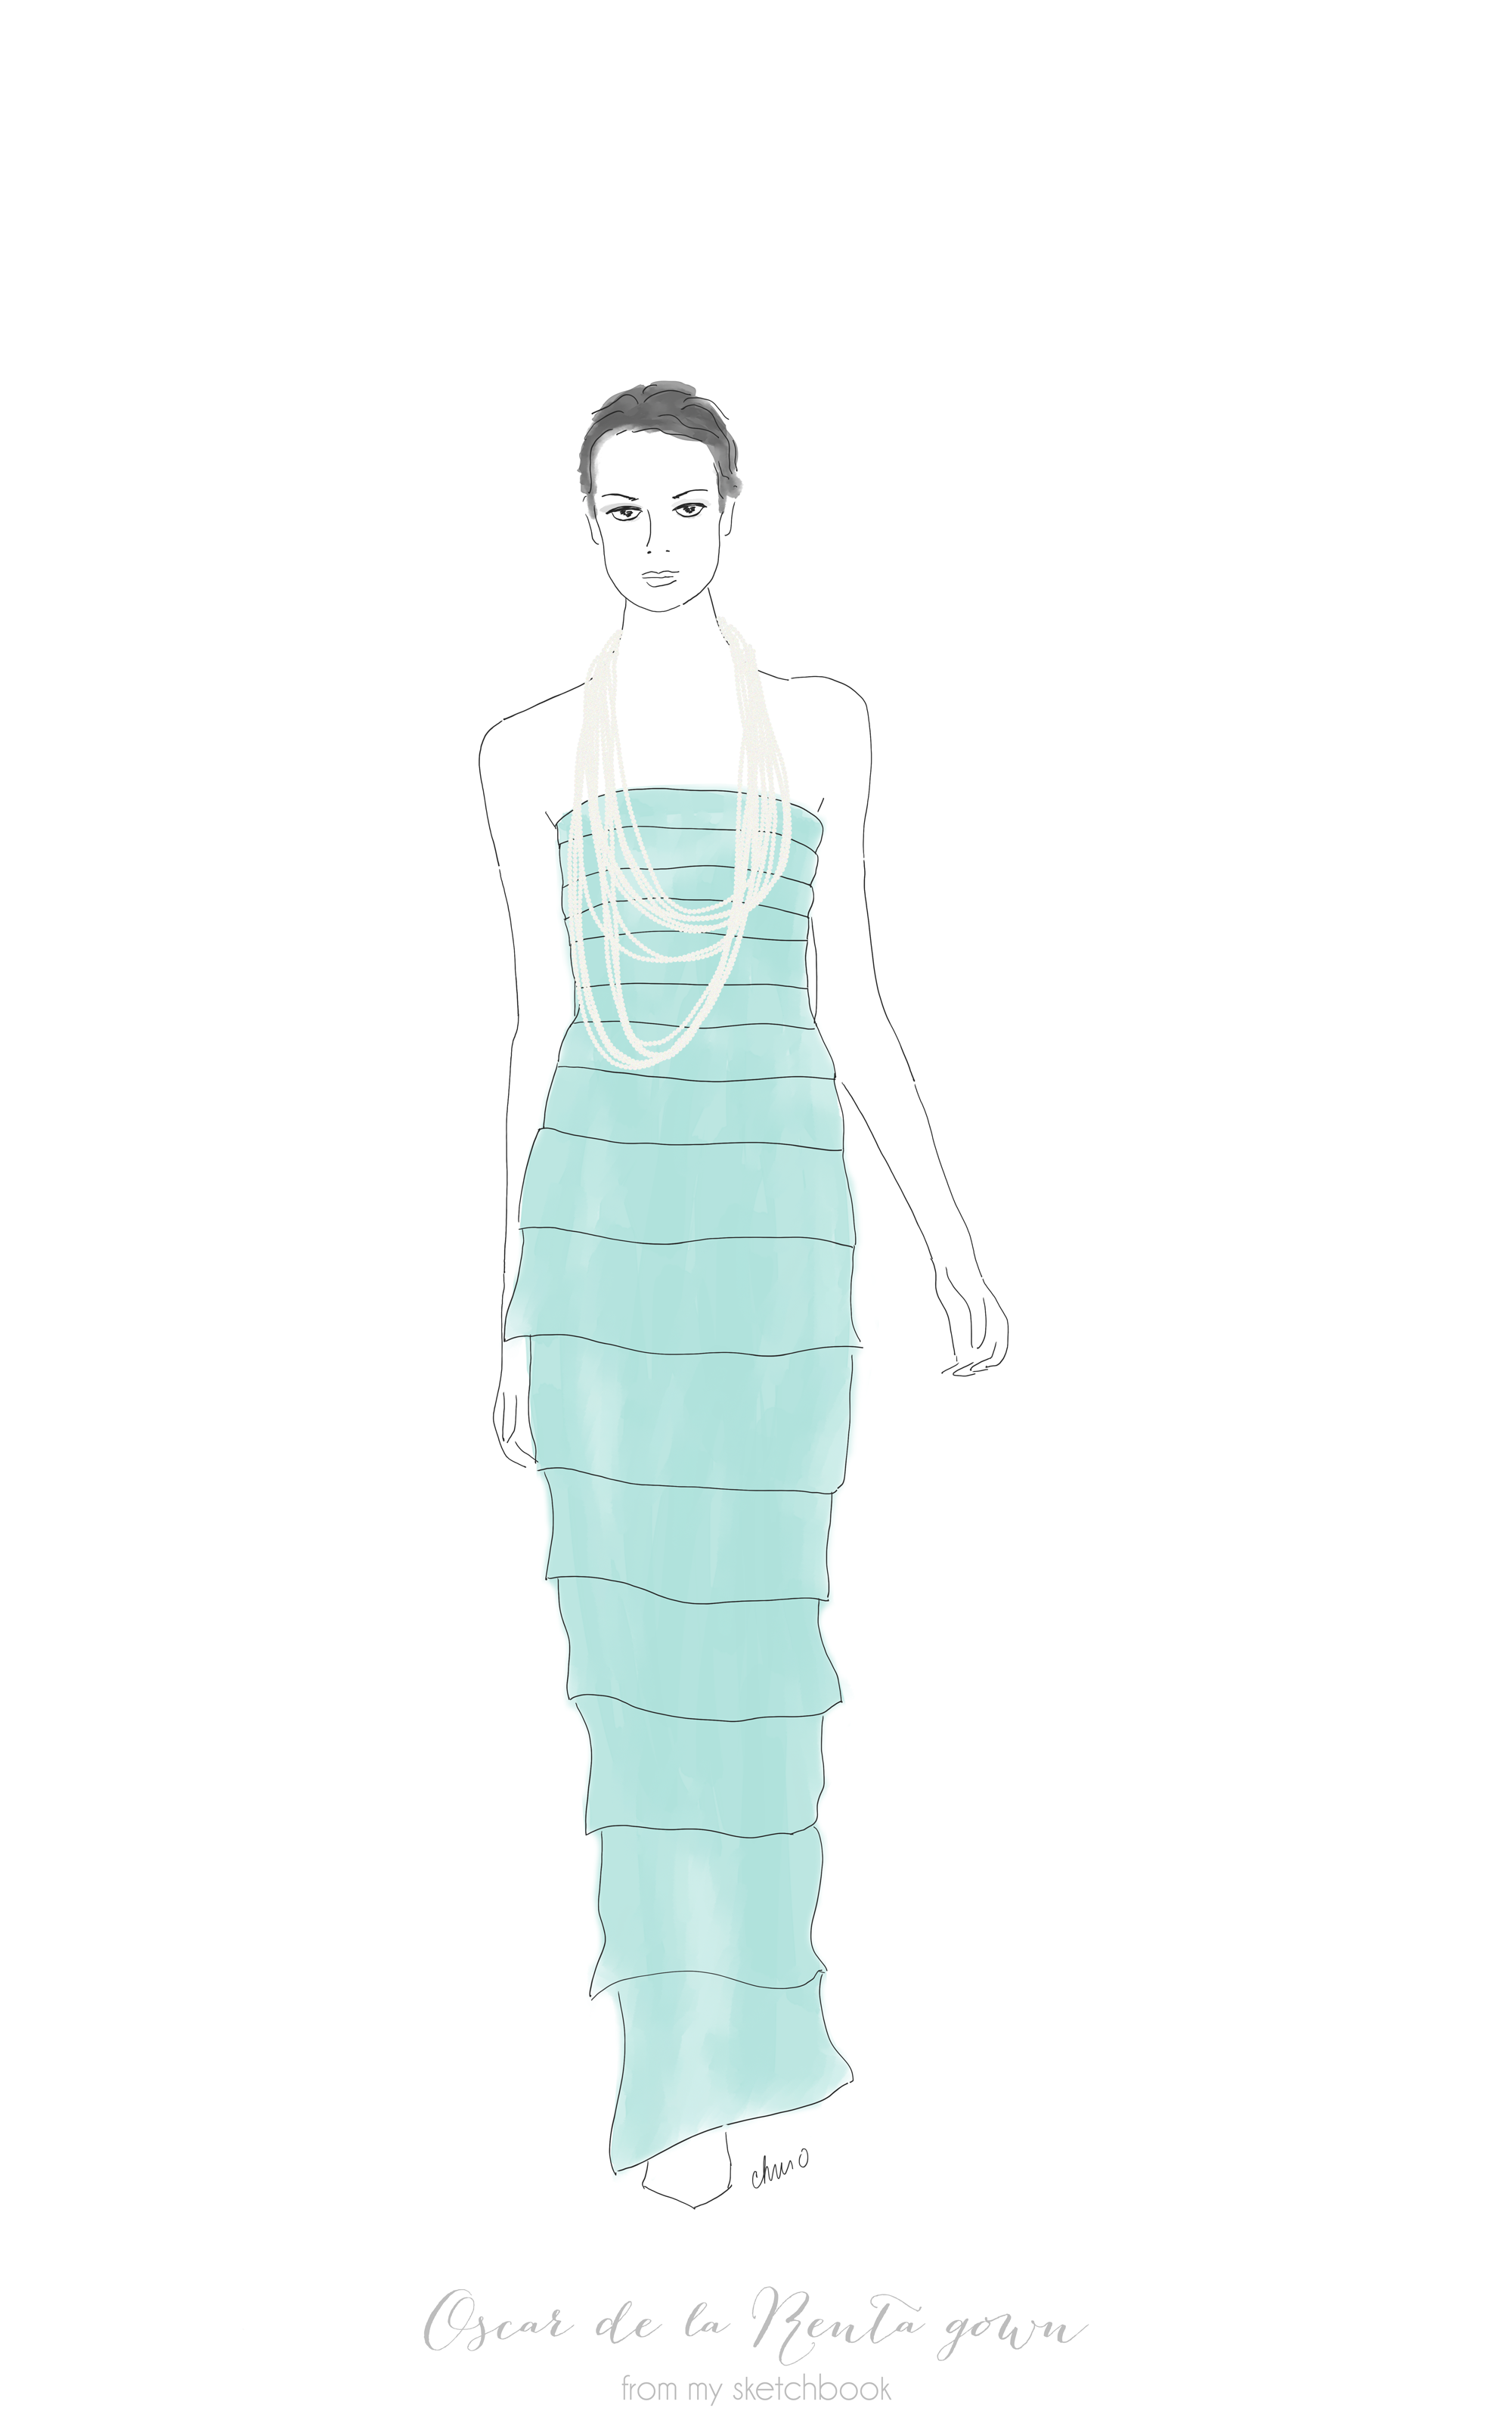 Oscar de la Renta silk georgette tiered gown with pearl trim from his Spring 2014 collection.